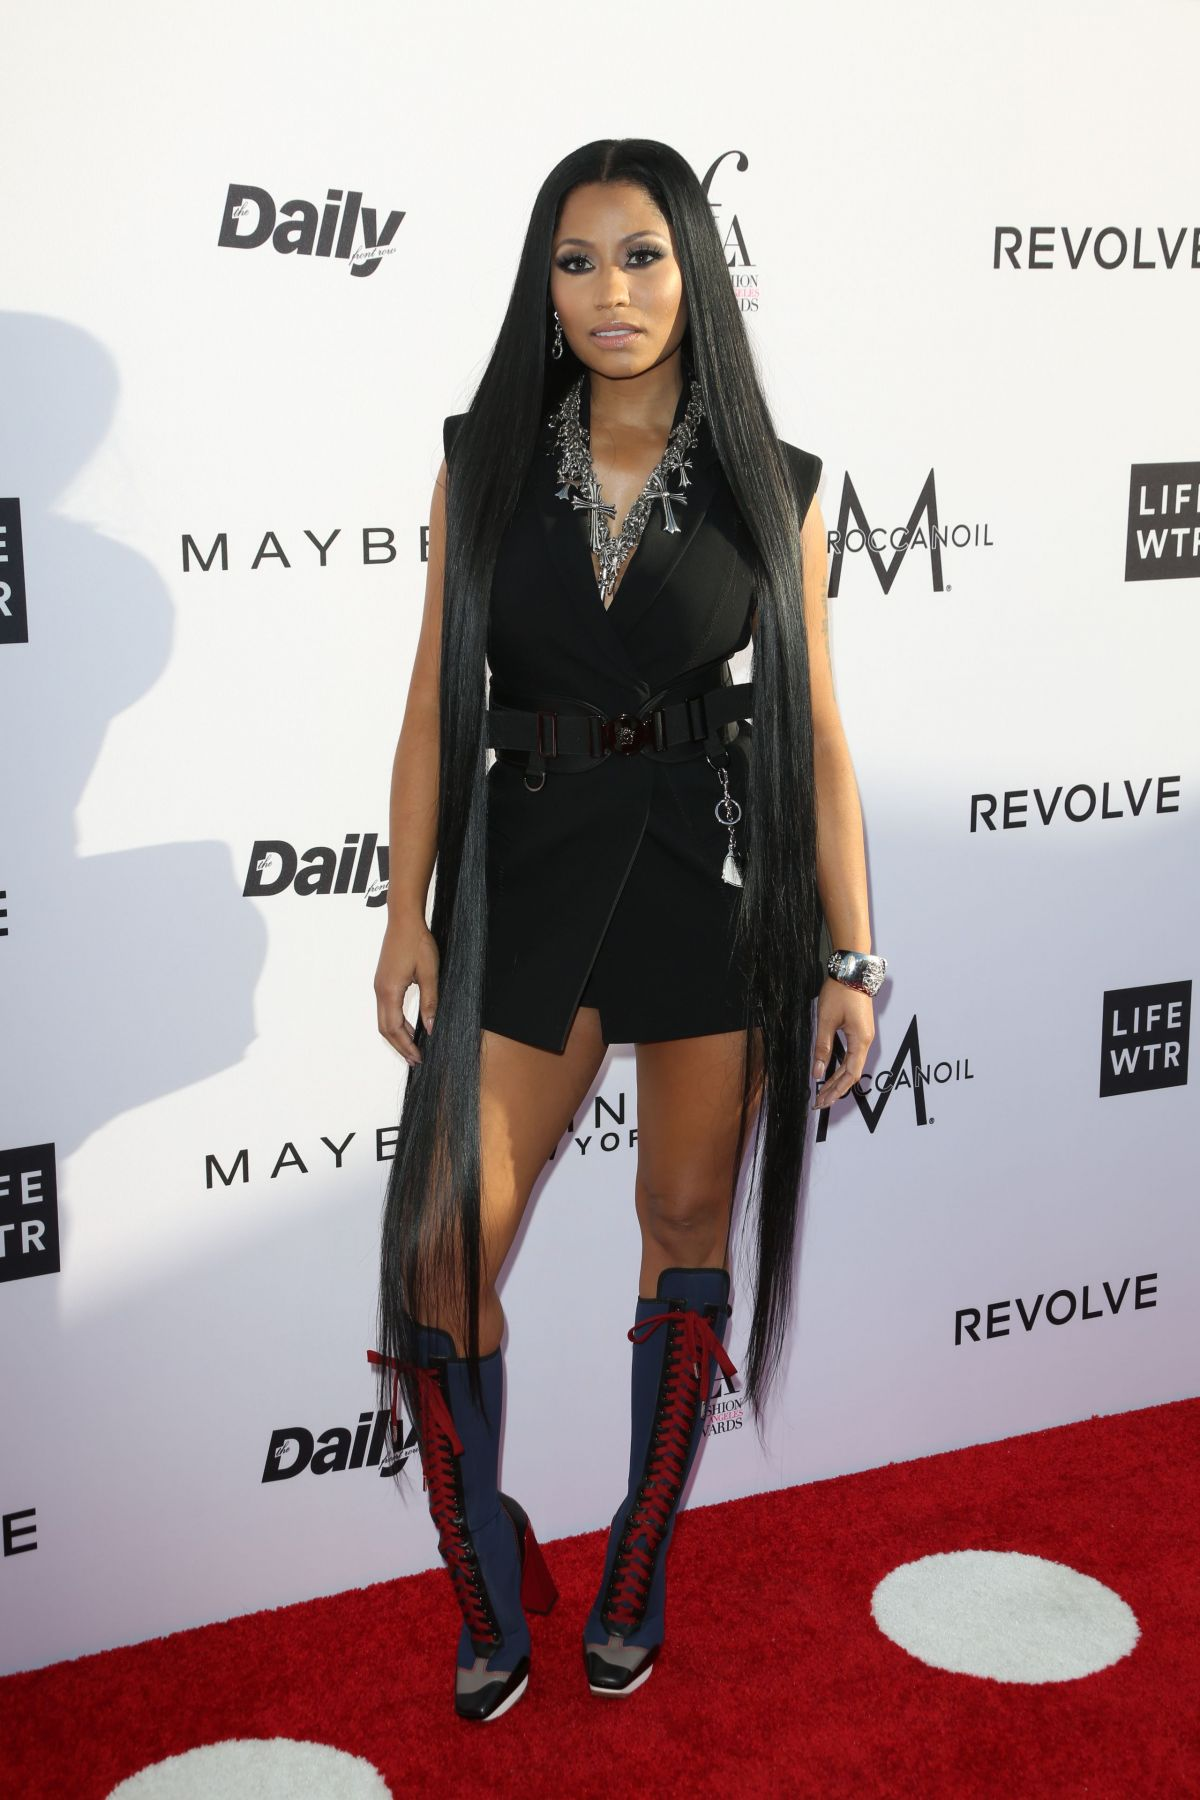 Nicki Minaj At Daily Front Row's 3rd Annual Fashion Los Angeles Awards – West Hollywood   nicki-minaj-at-daily-front-row-s-3rd-annual-fashion-los-angeles-awards-west-hollywood_9